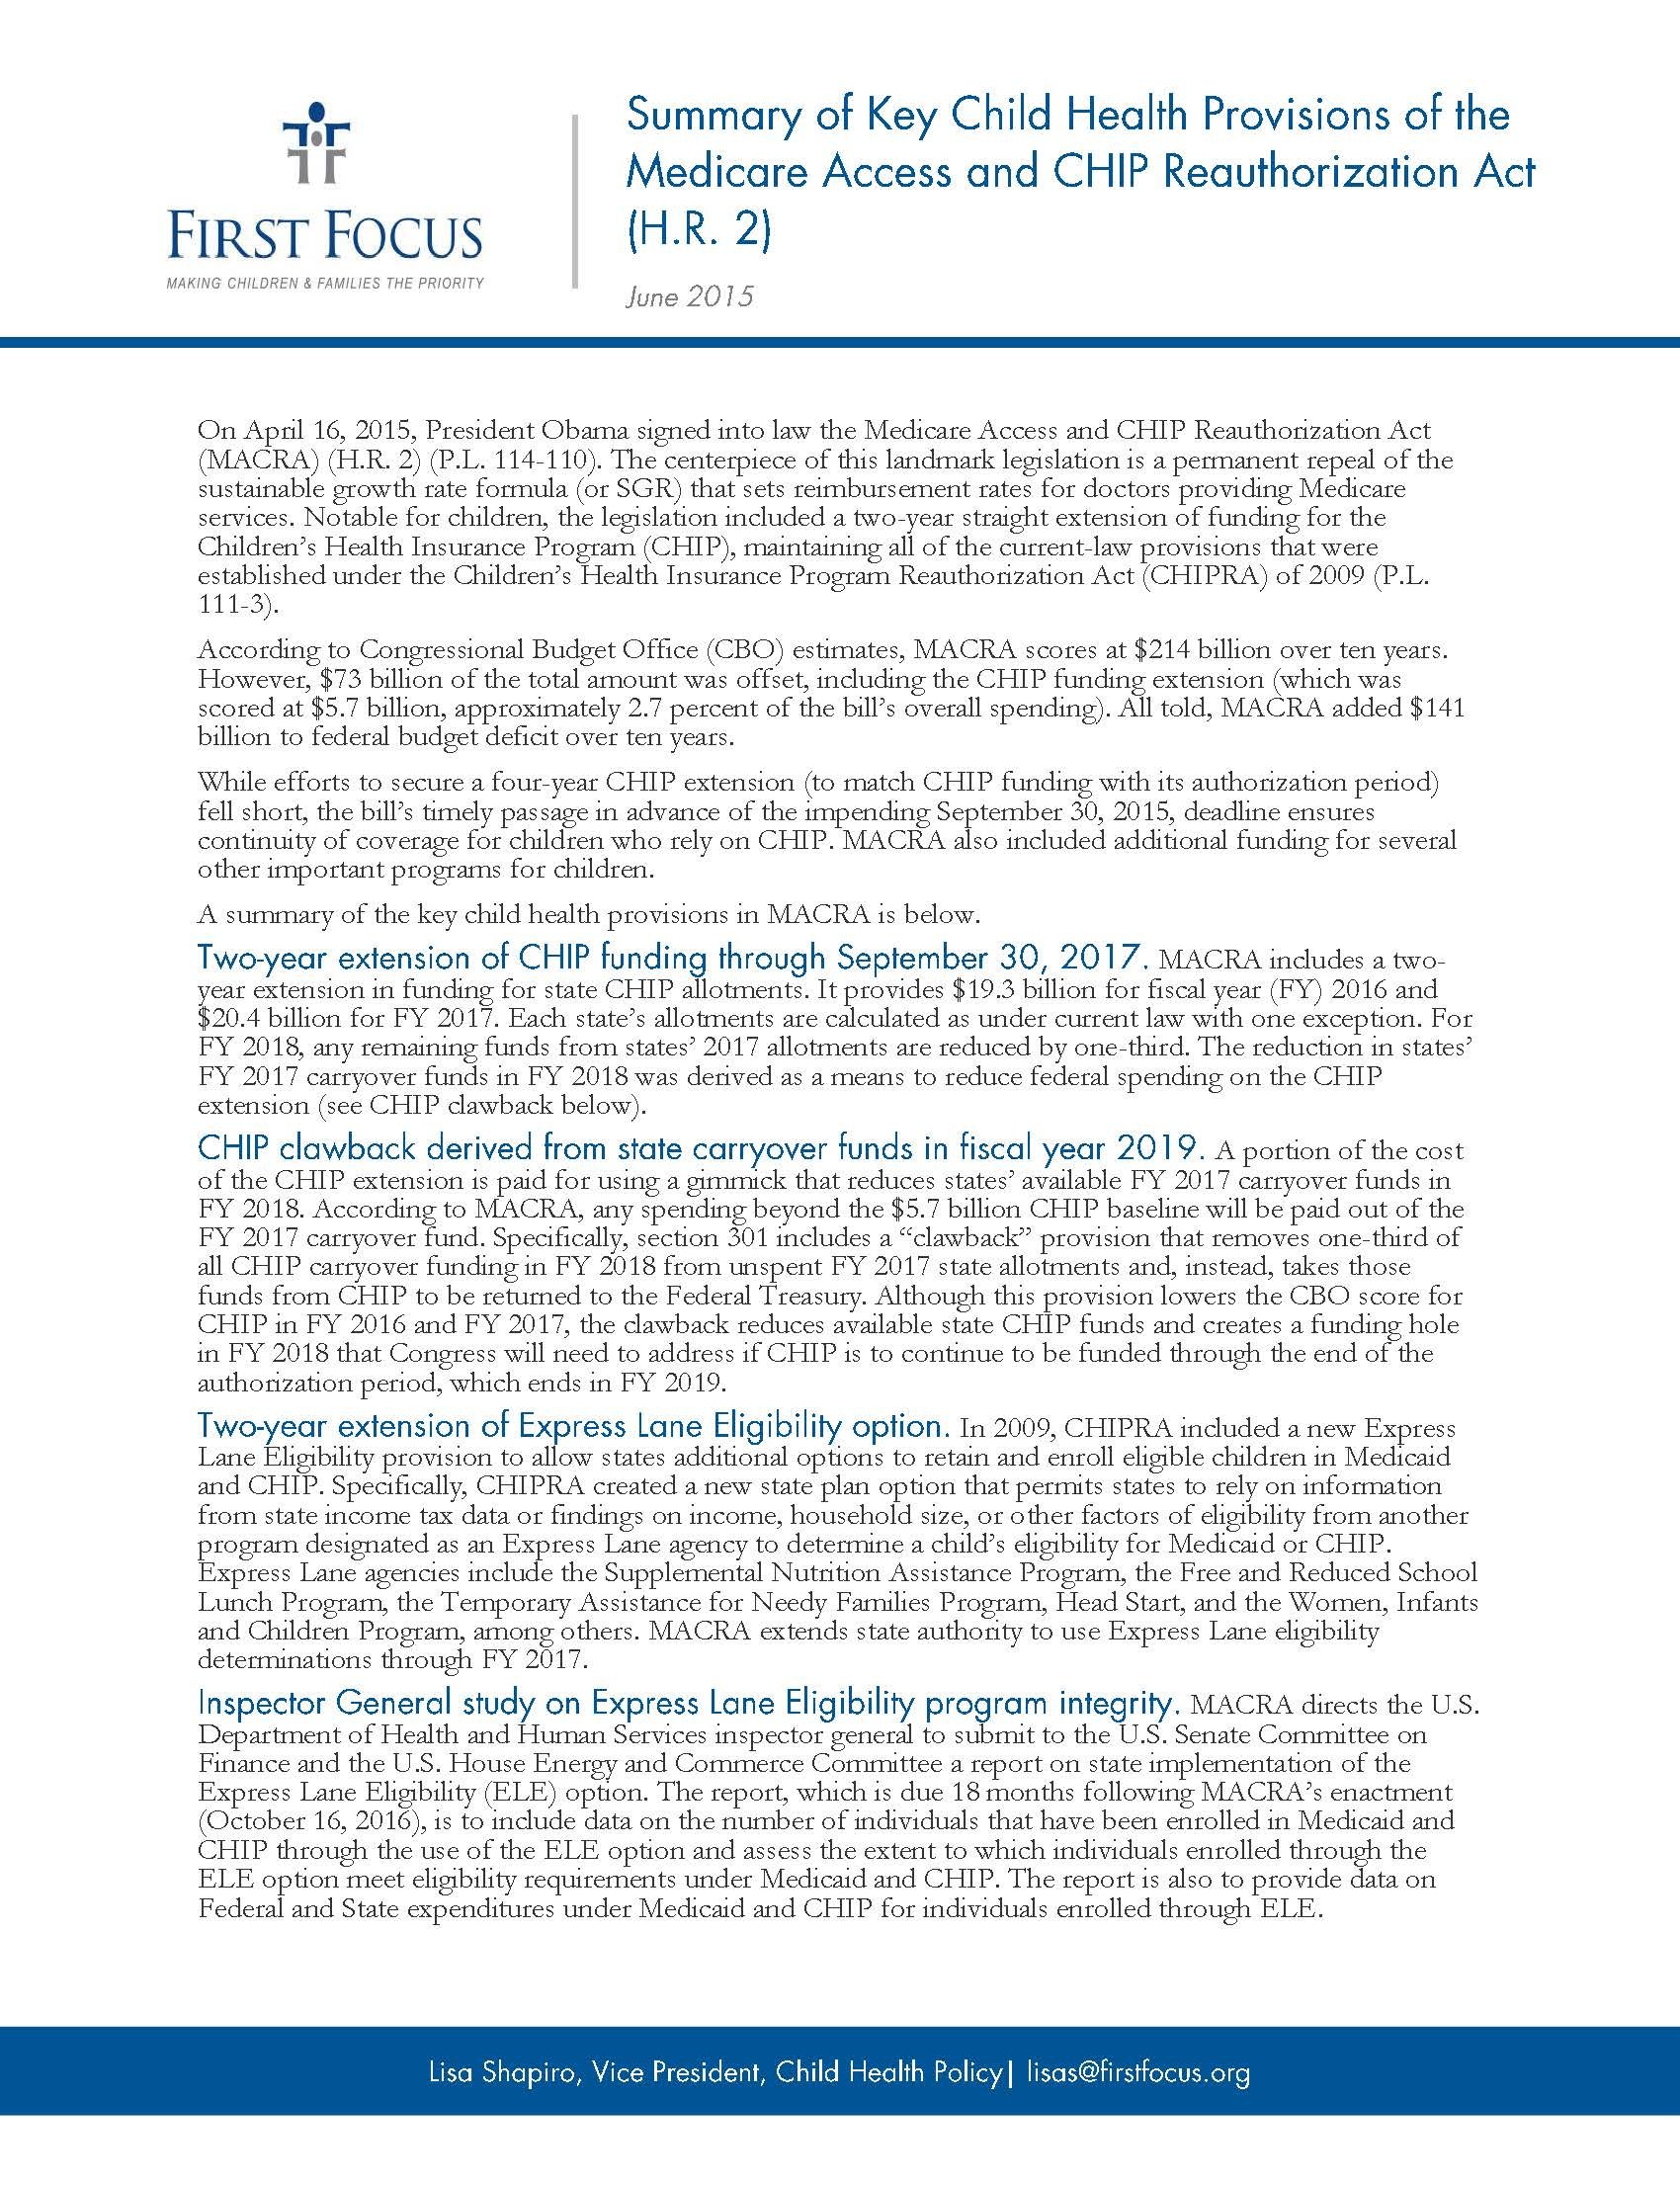 Summary of Key Child Health Provisions of the Medicare Access and CHIP Reauthorization Act_Page_1